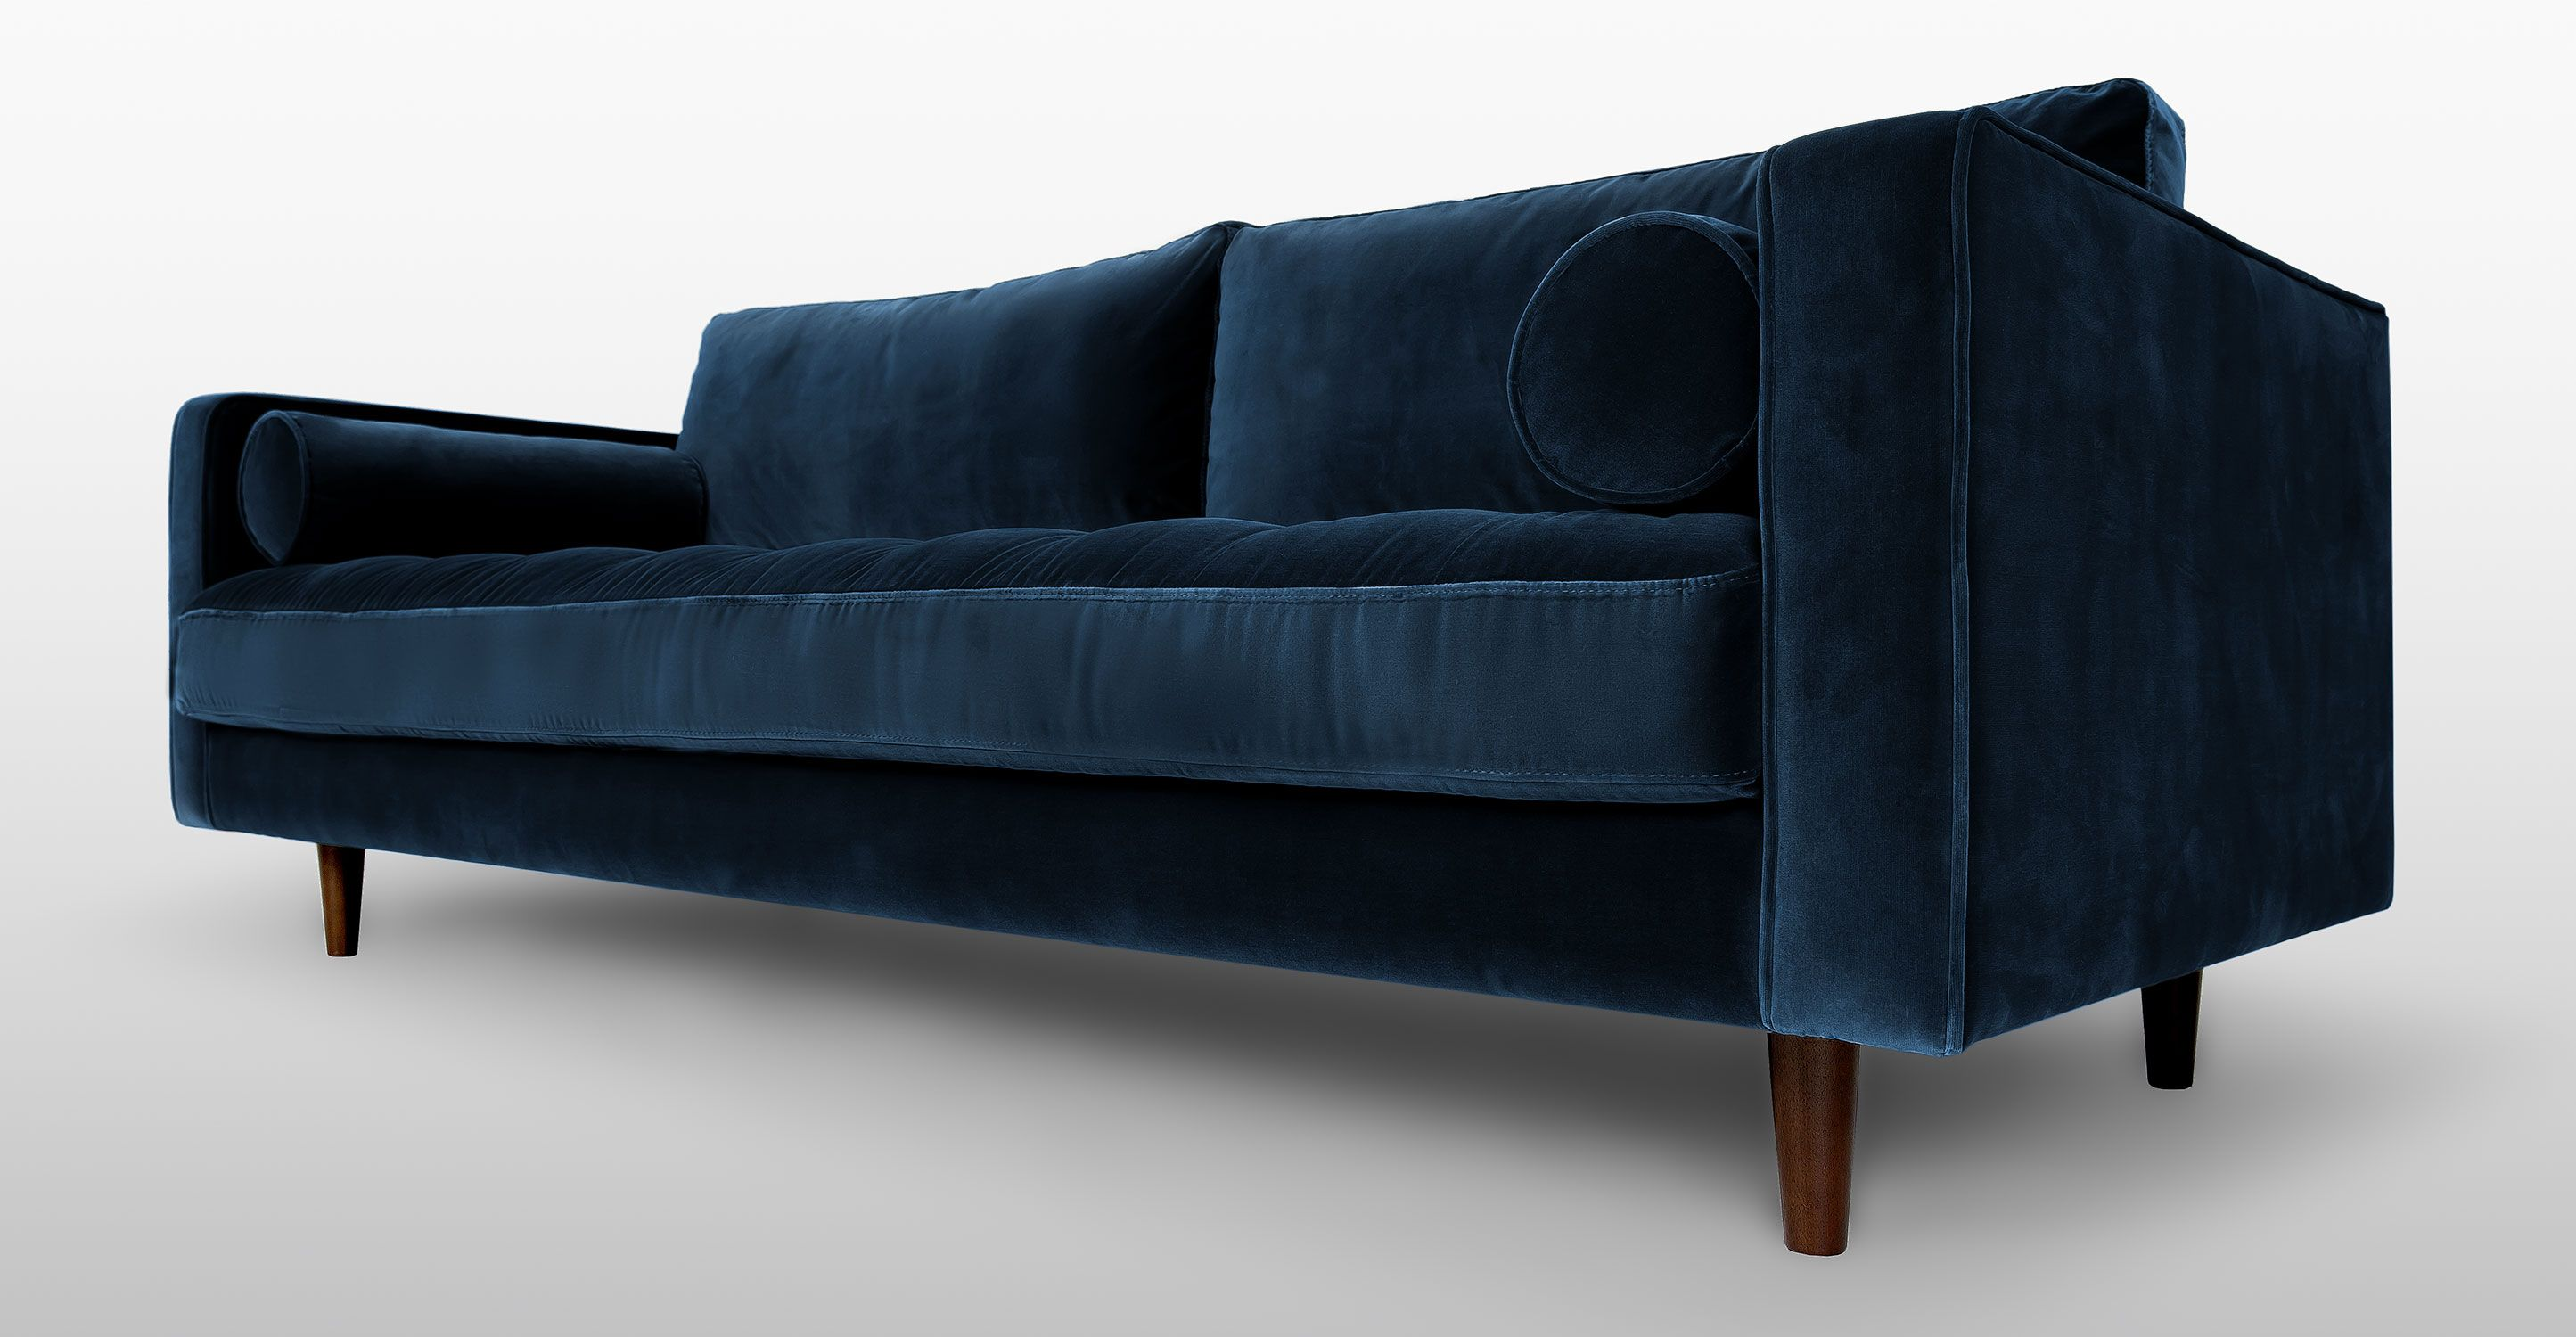 Sven Cascadia Blue Sofa | Green sofa, Comfortable sofa, Sofa ...